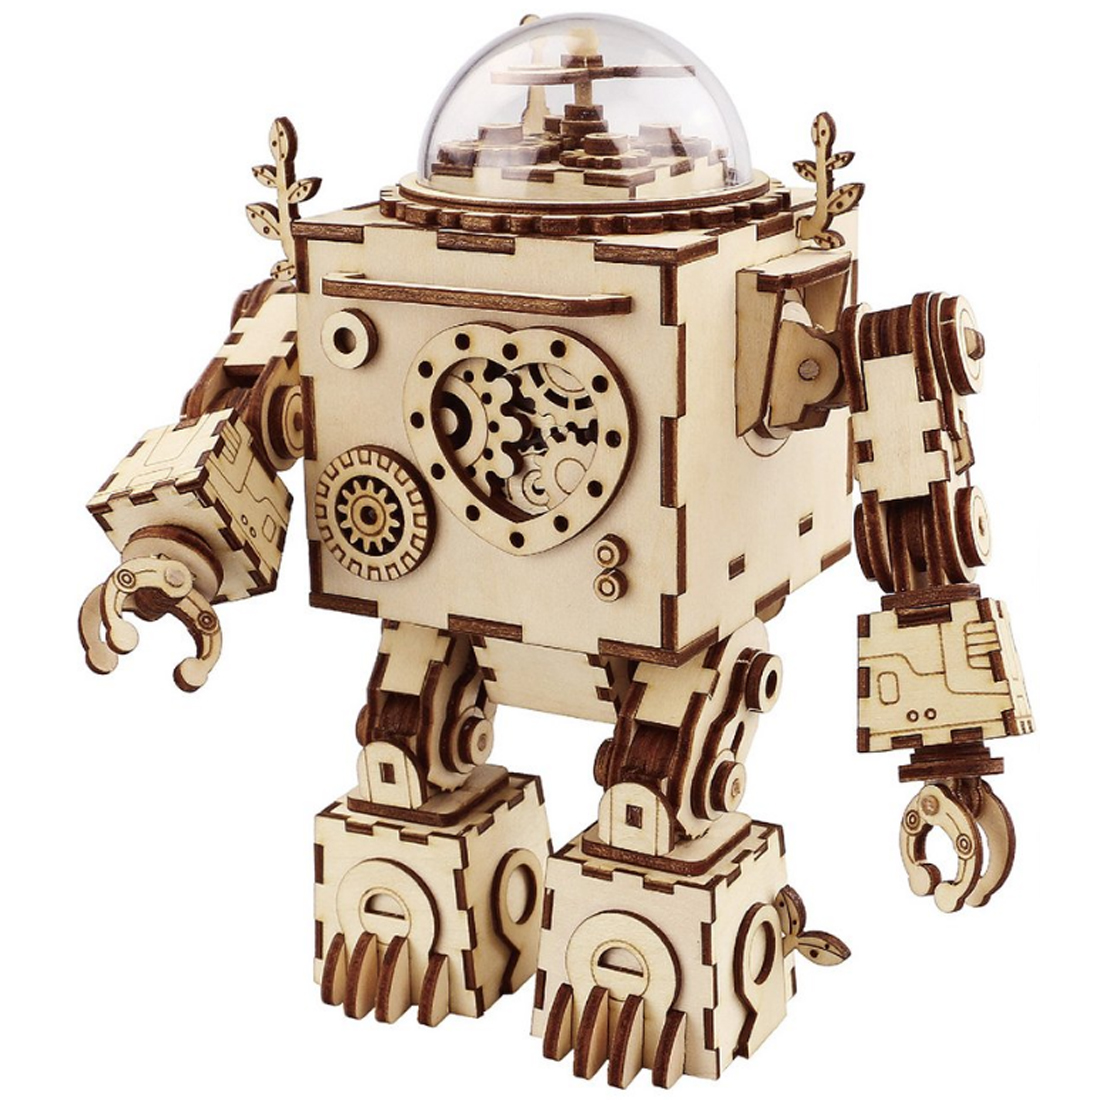 Robot Model Wooden Gear DIY 3D Puzzle Steampunk Music Box for Patience and Hands-on Ability Development-Burlywood diy wooden assembling brontosaurus model burlywood